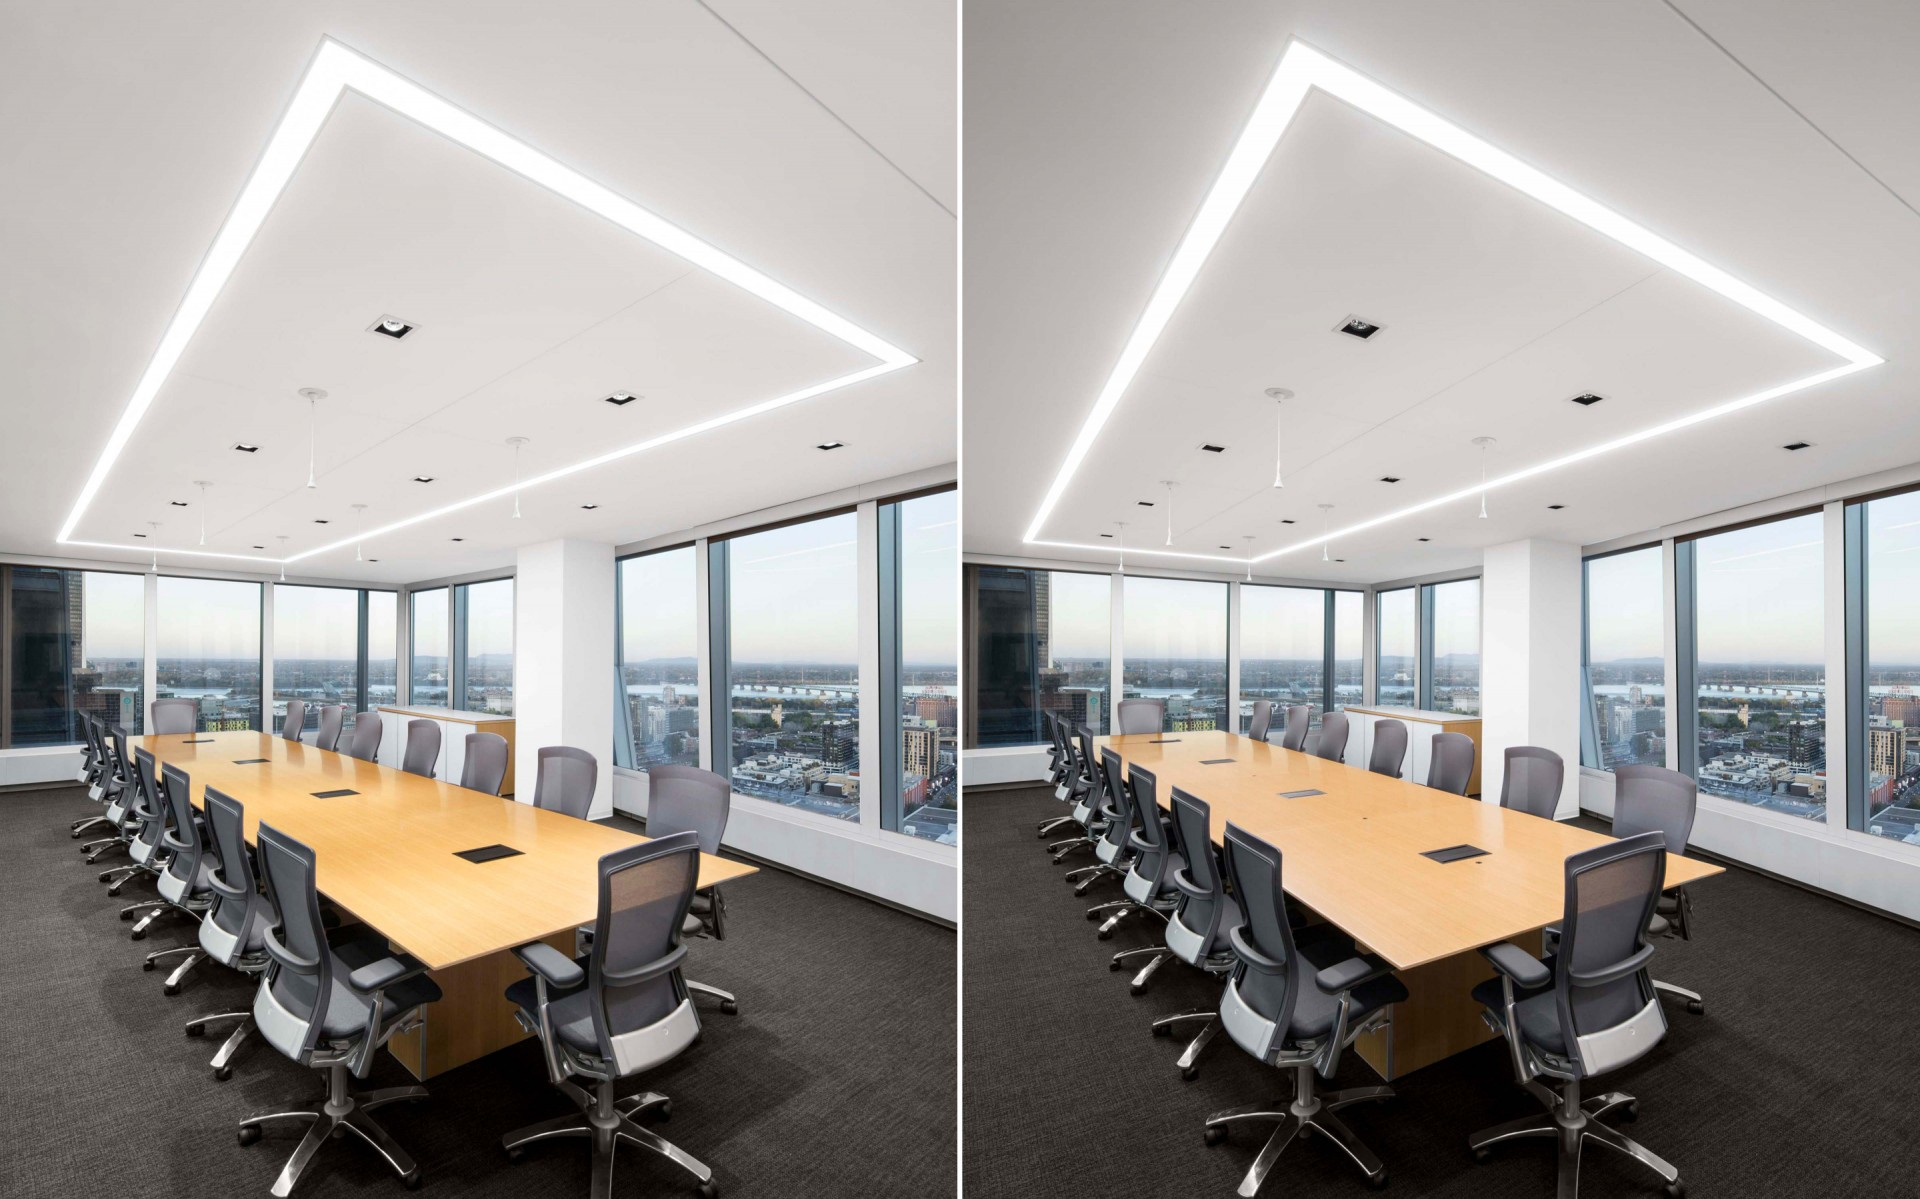 The versatility of the fixtures helped create a welcoming, energy-efficient environment.  – Stéphane Brugger